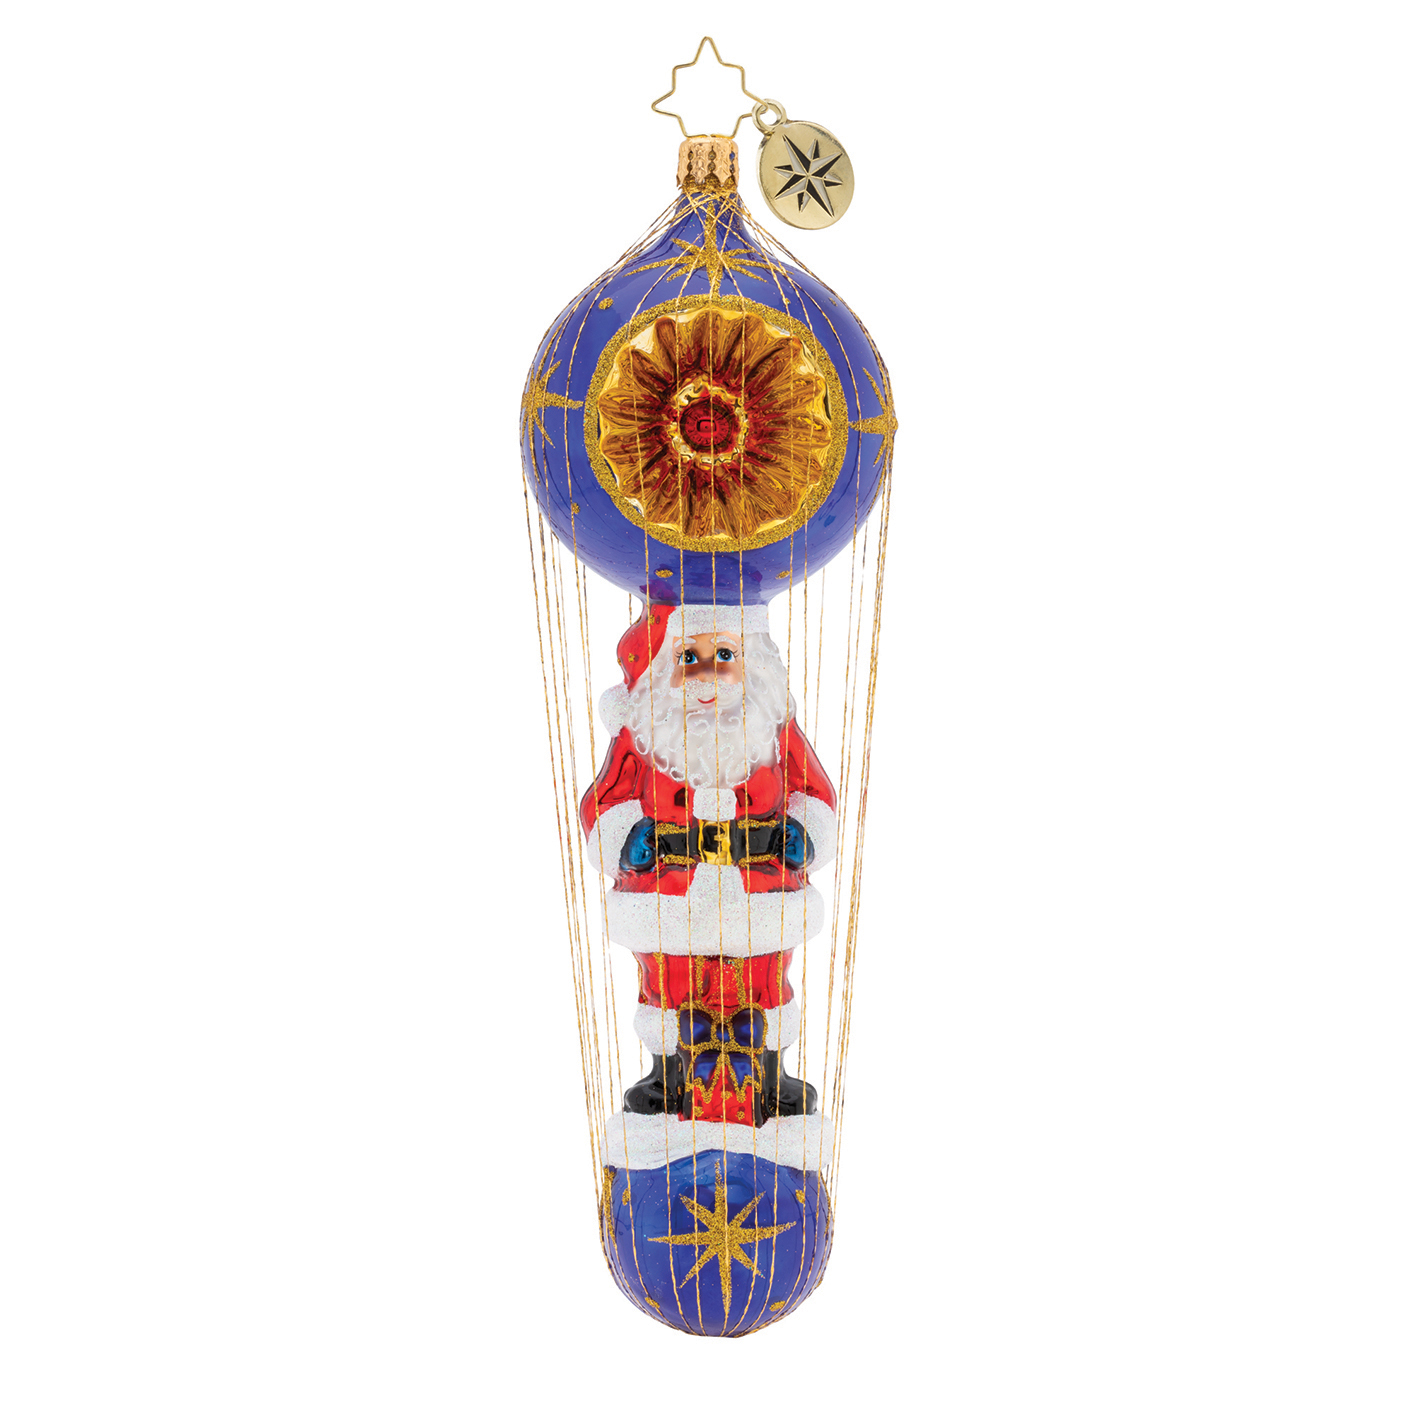 Christopher Radko Dashing Santa Delivery Ornament